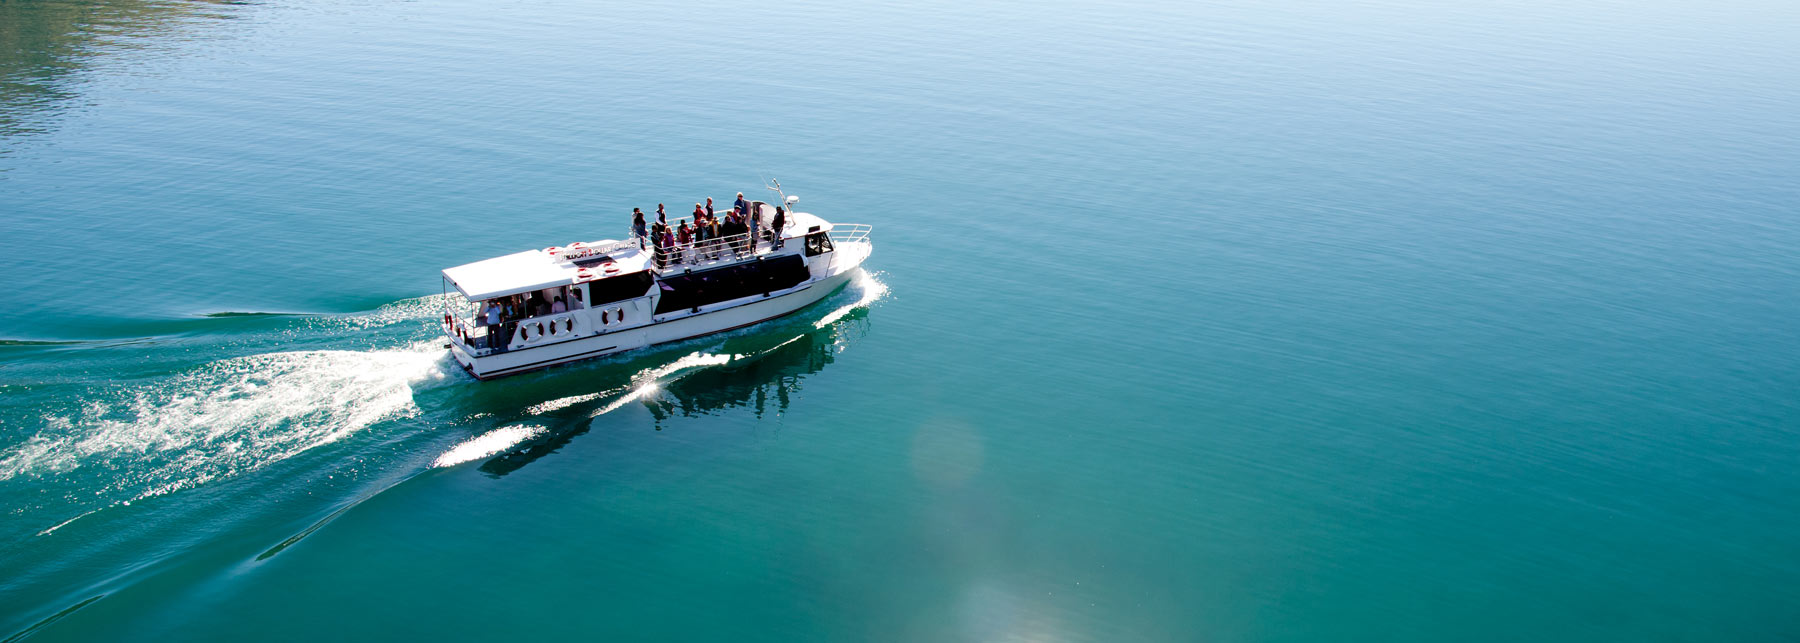 Queenstown Boat Hire Million Dollar Cruise Queenstown